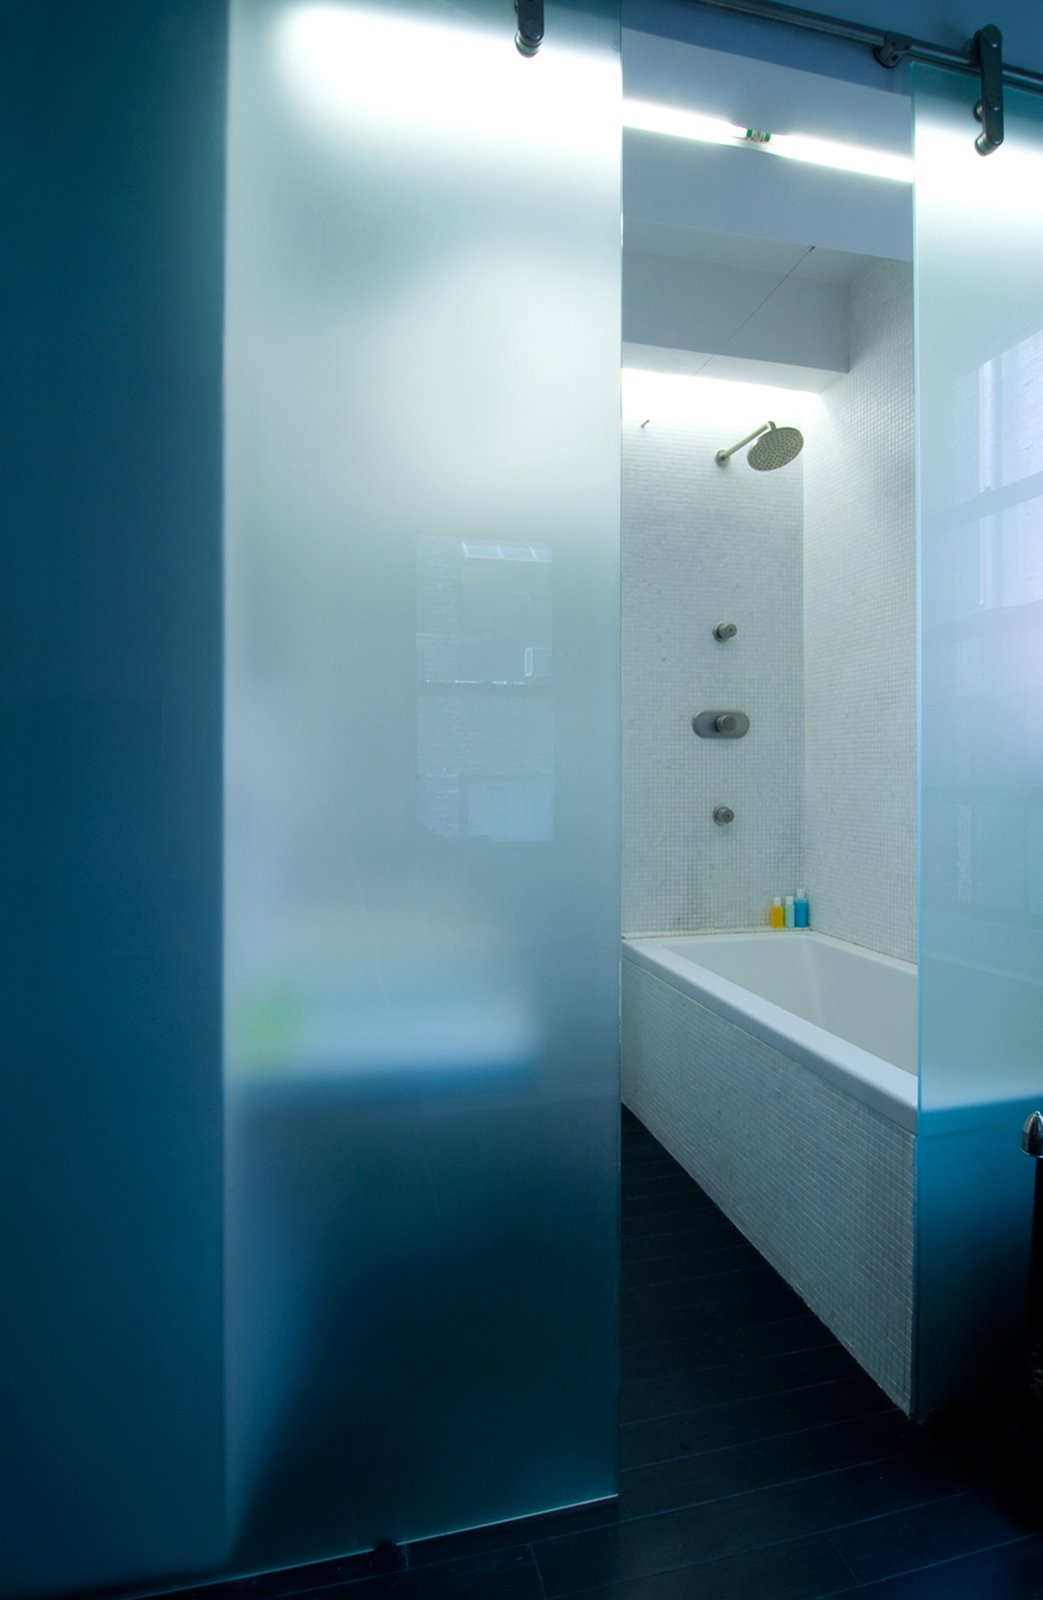 Bath Room, Drop In Tub, Open Shower, and Mosaic Tile Wall Acid-etched frosted, barn style- sliding glass panel  Park Avenue Studio